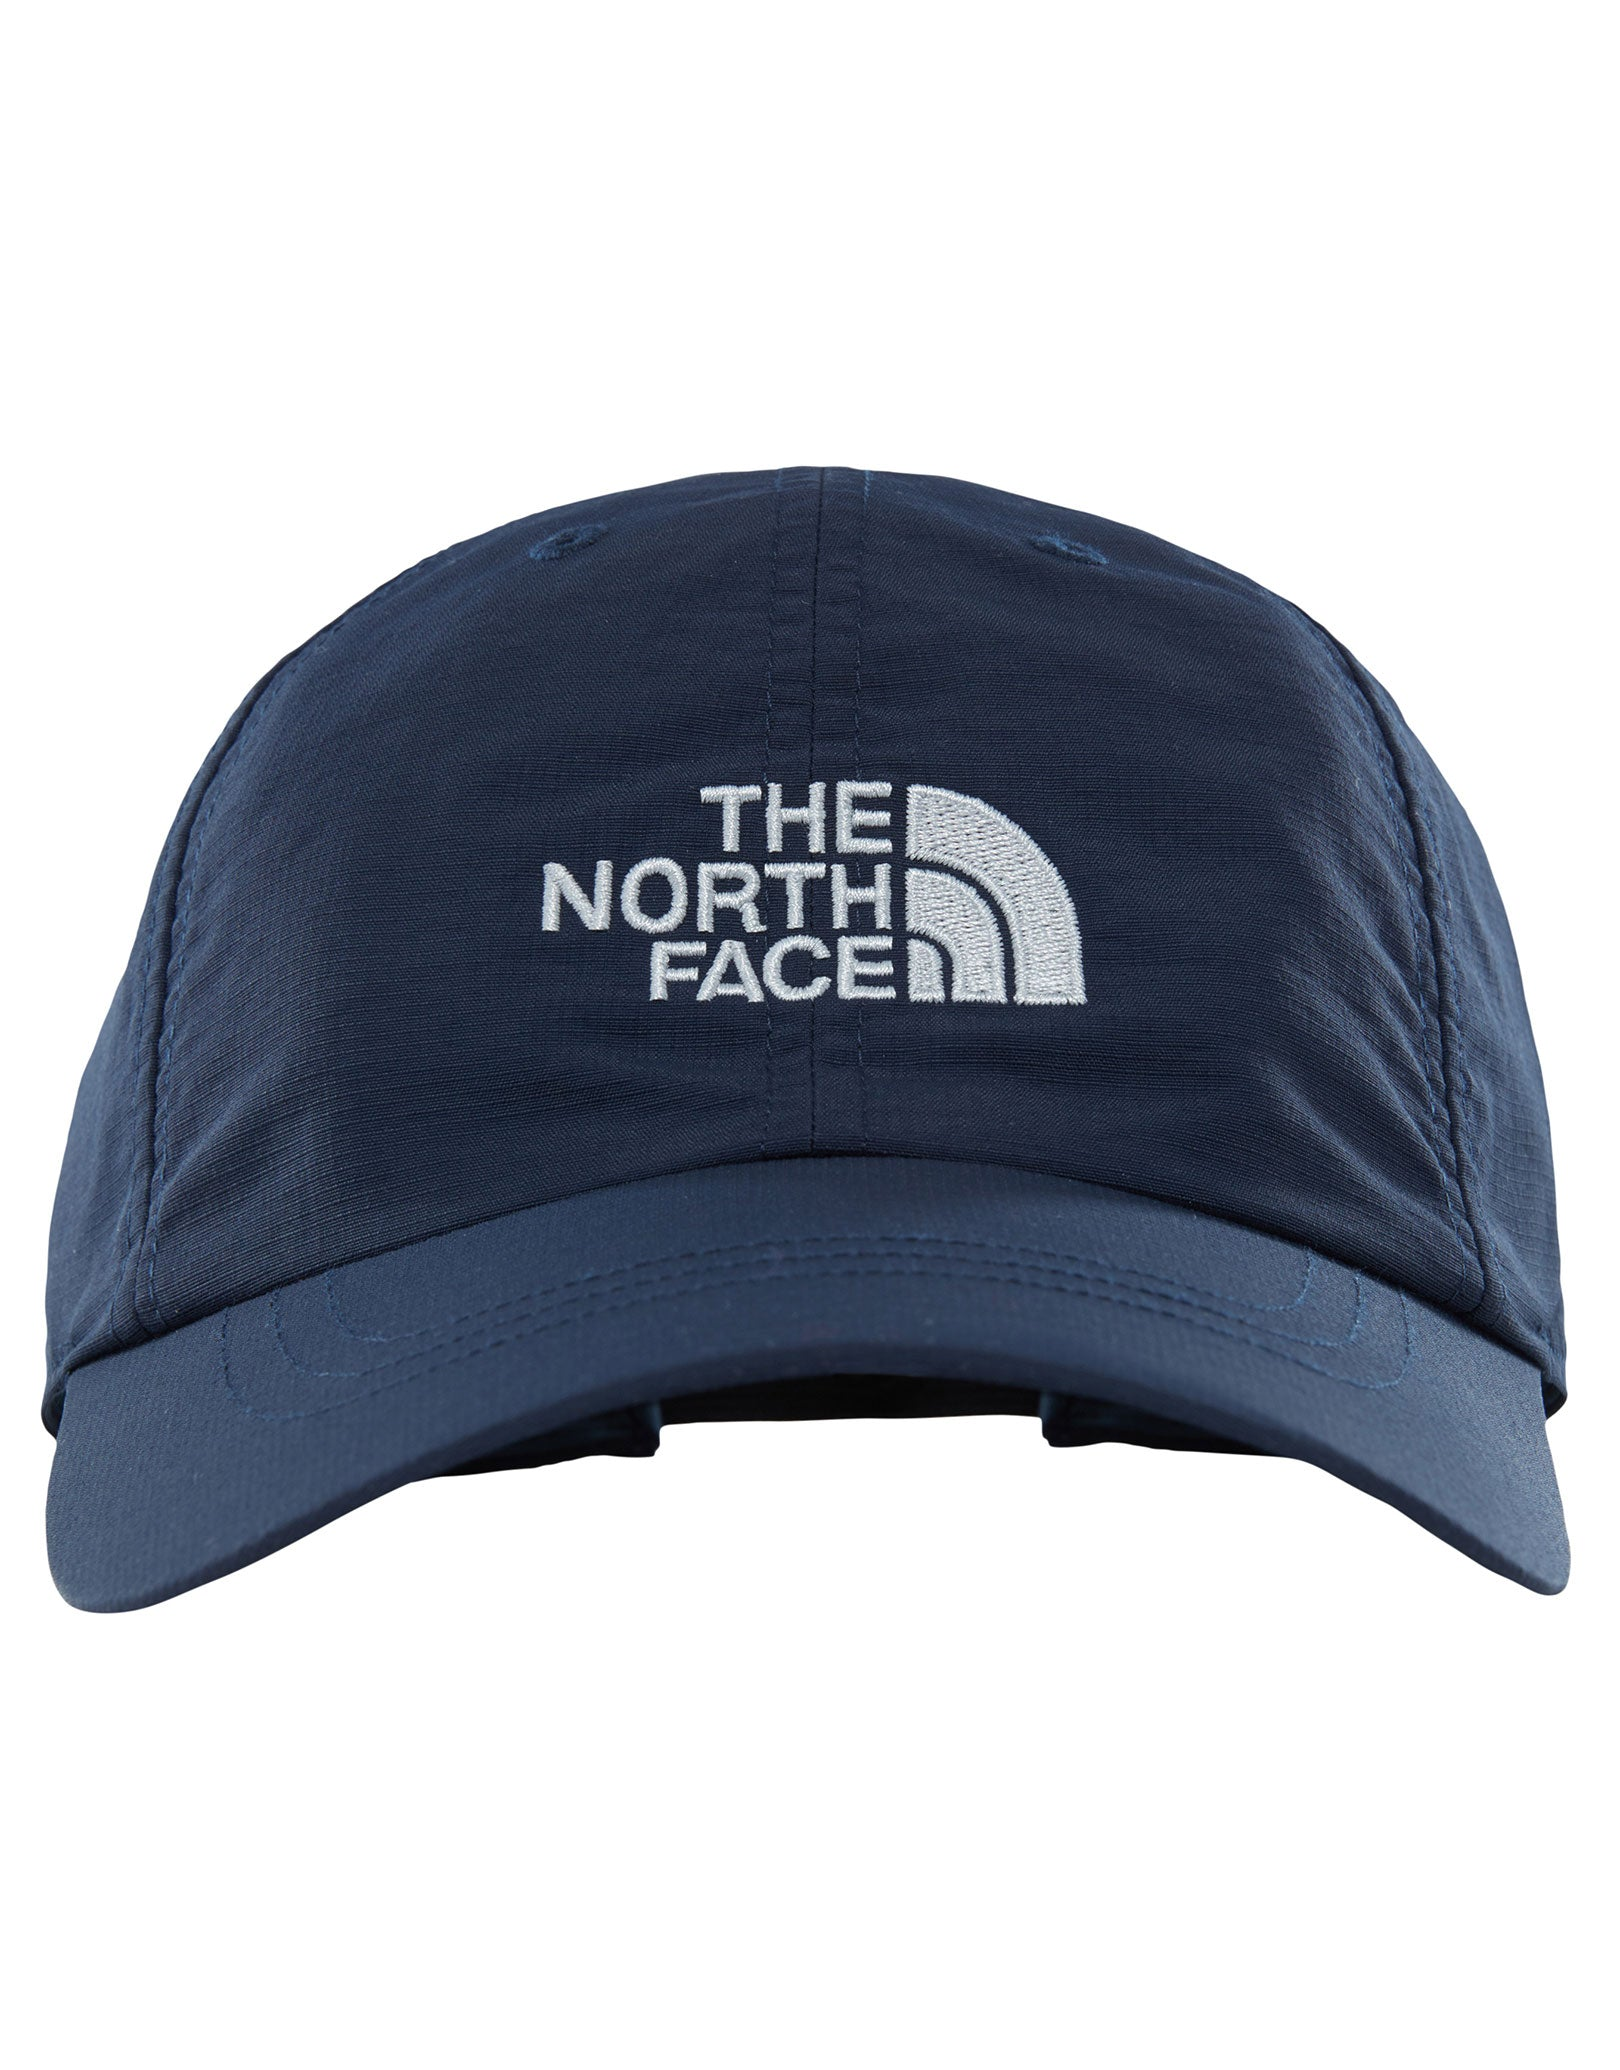 db2b4595 ... The North Face Horizon Cap - Urban Navy ...